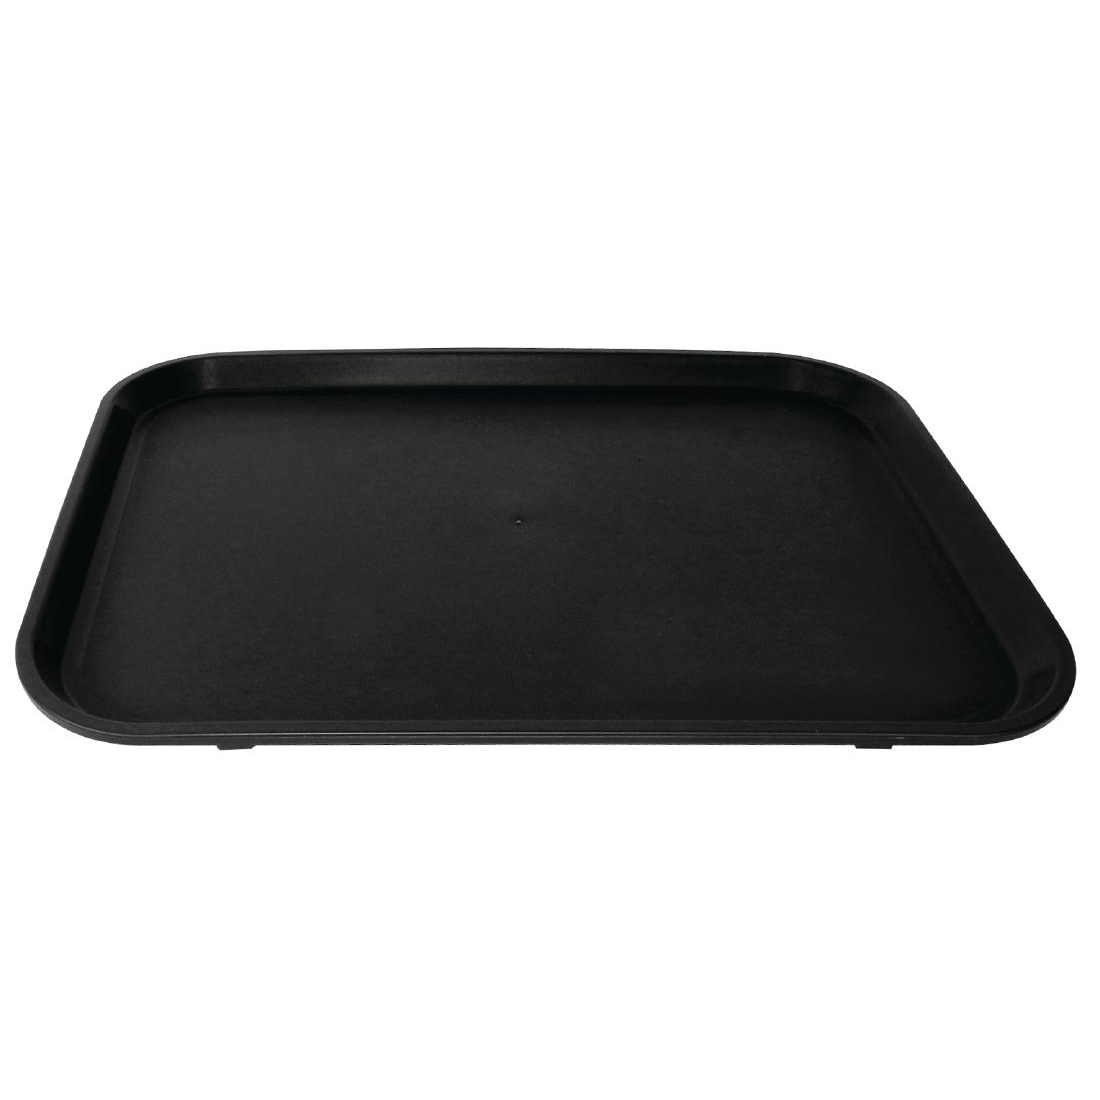 Kristallon Non-slip Tray Black 14 x 18 in